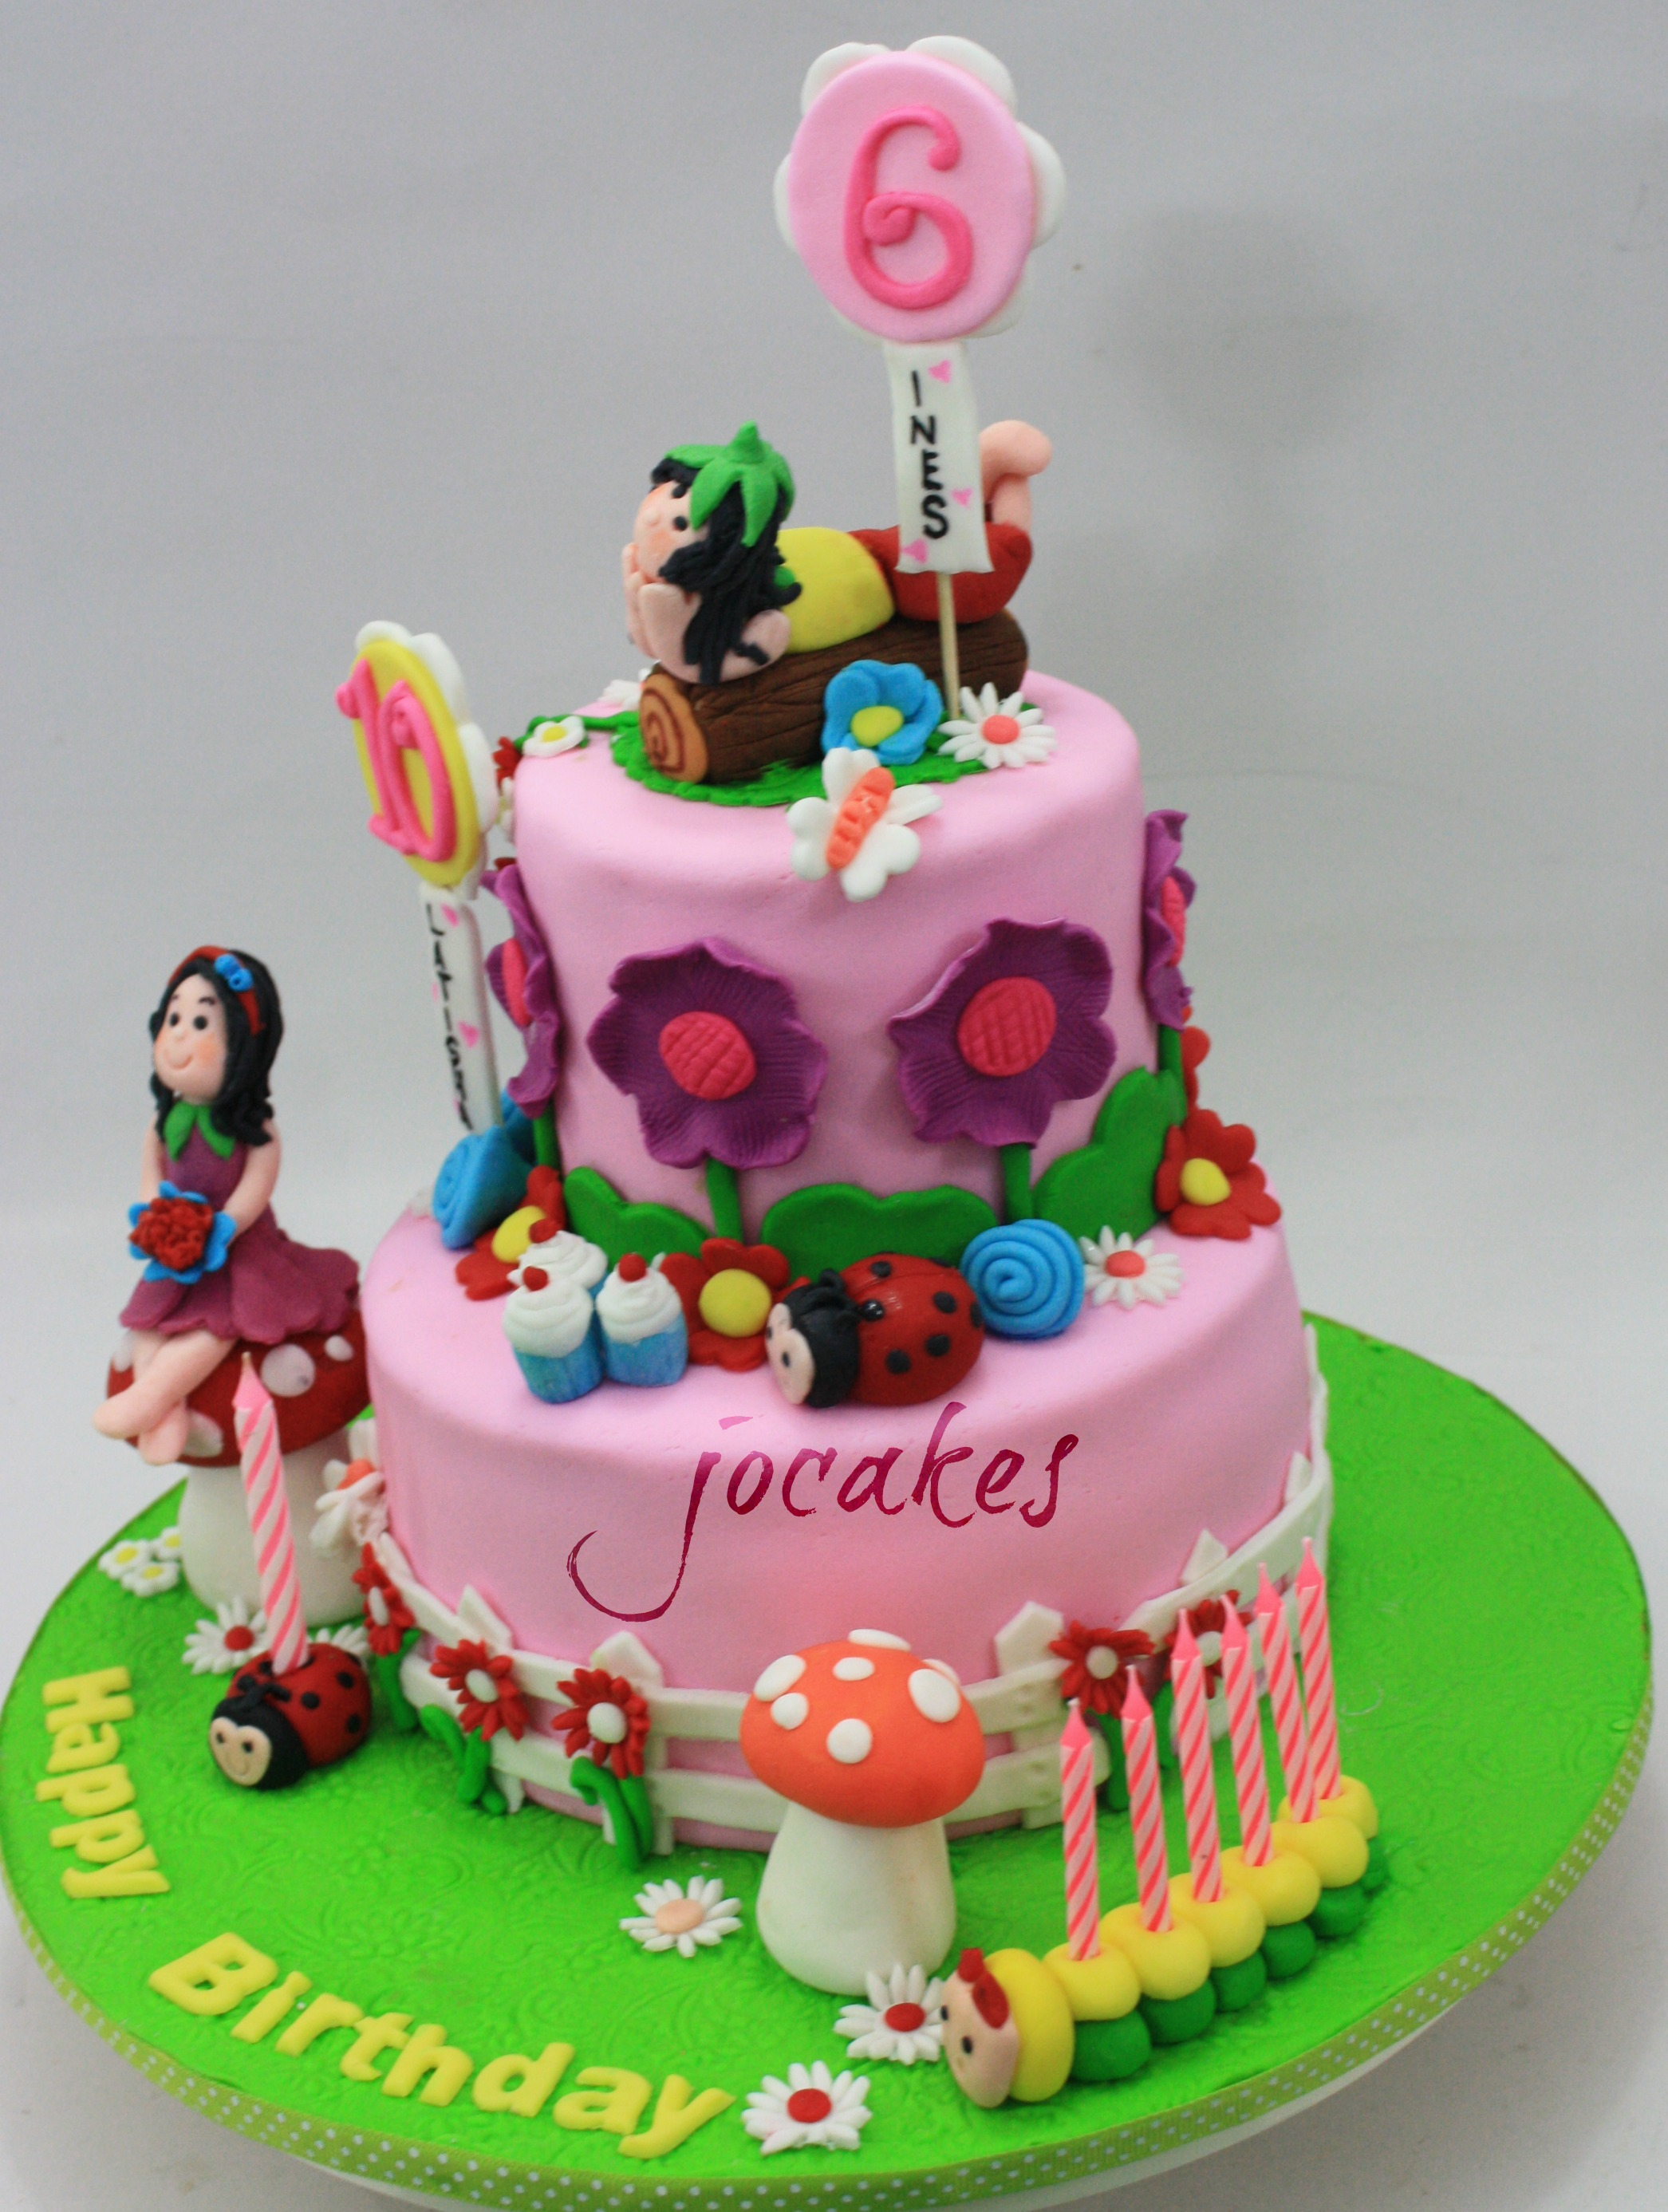 6 Year Old Girl Birthday Cakes